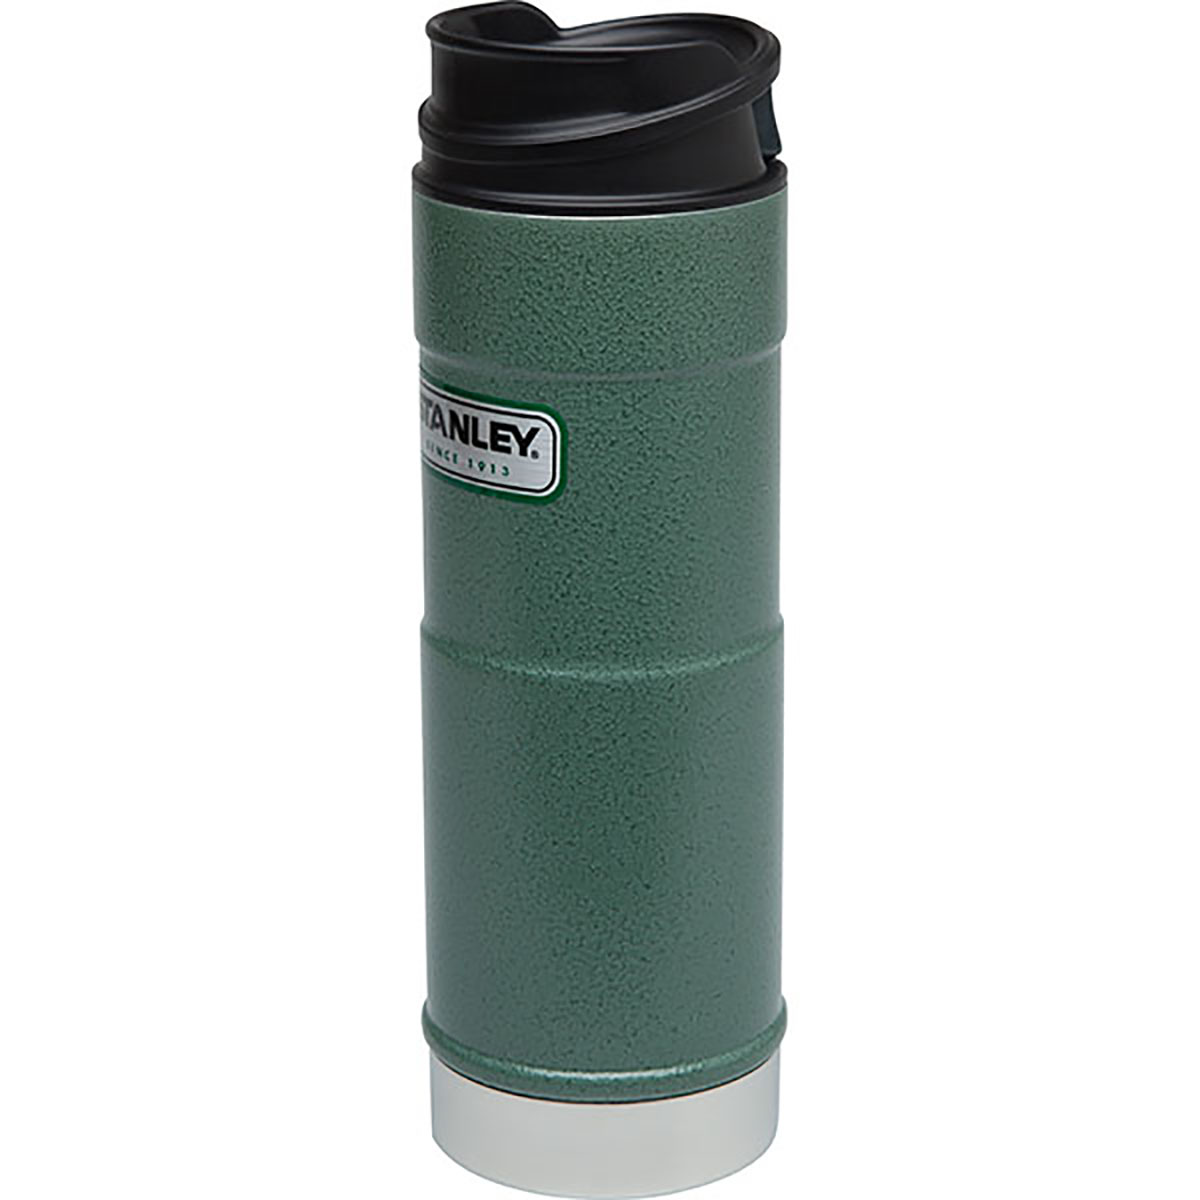 Stanley Classic One Handed Vacuum Insulated Stainless